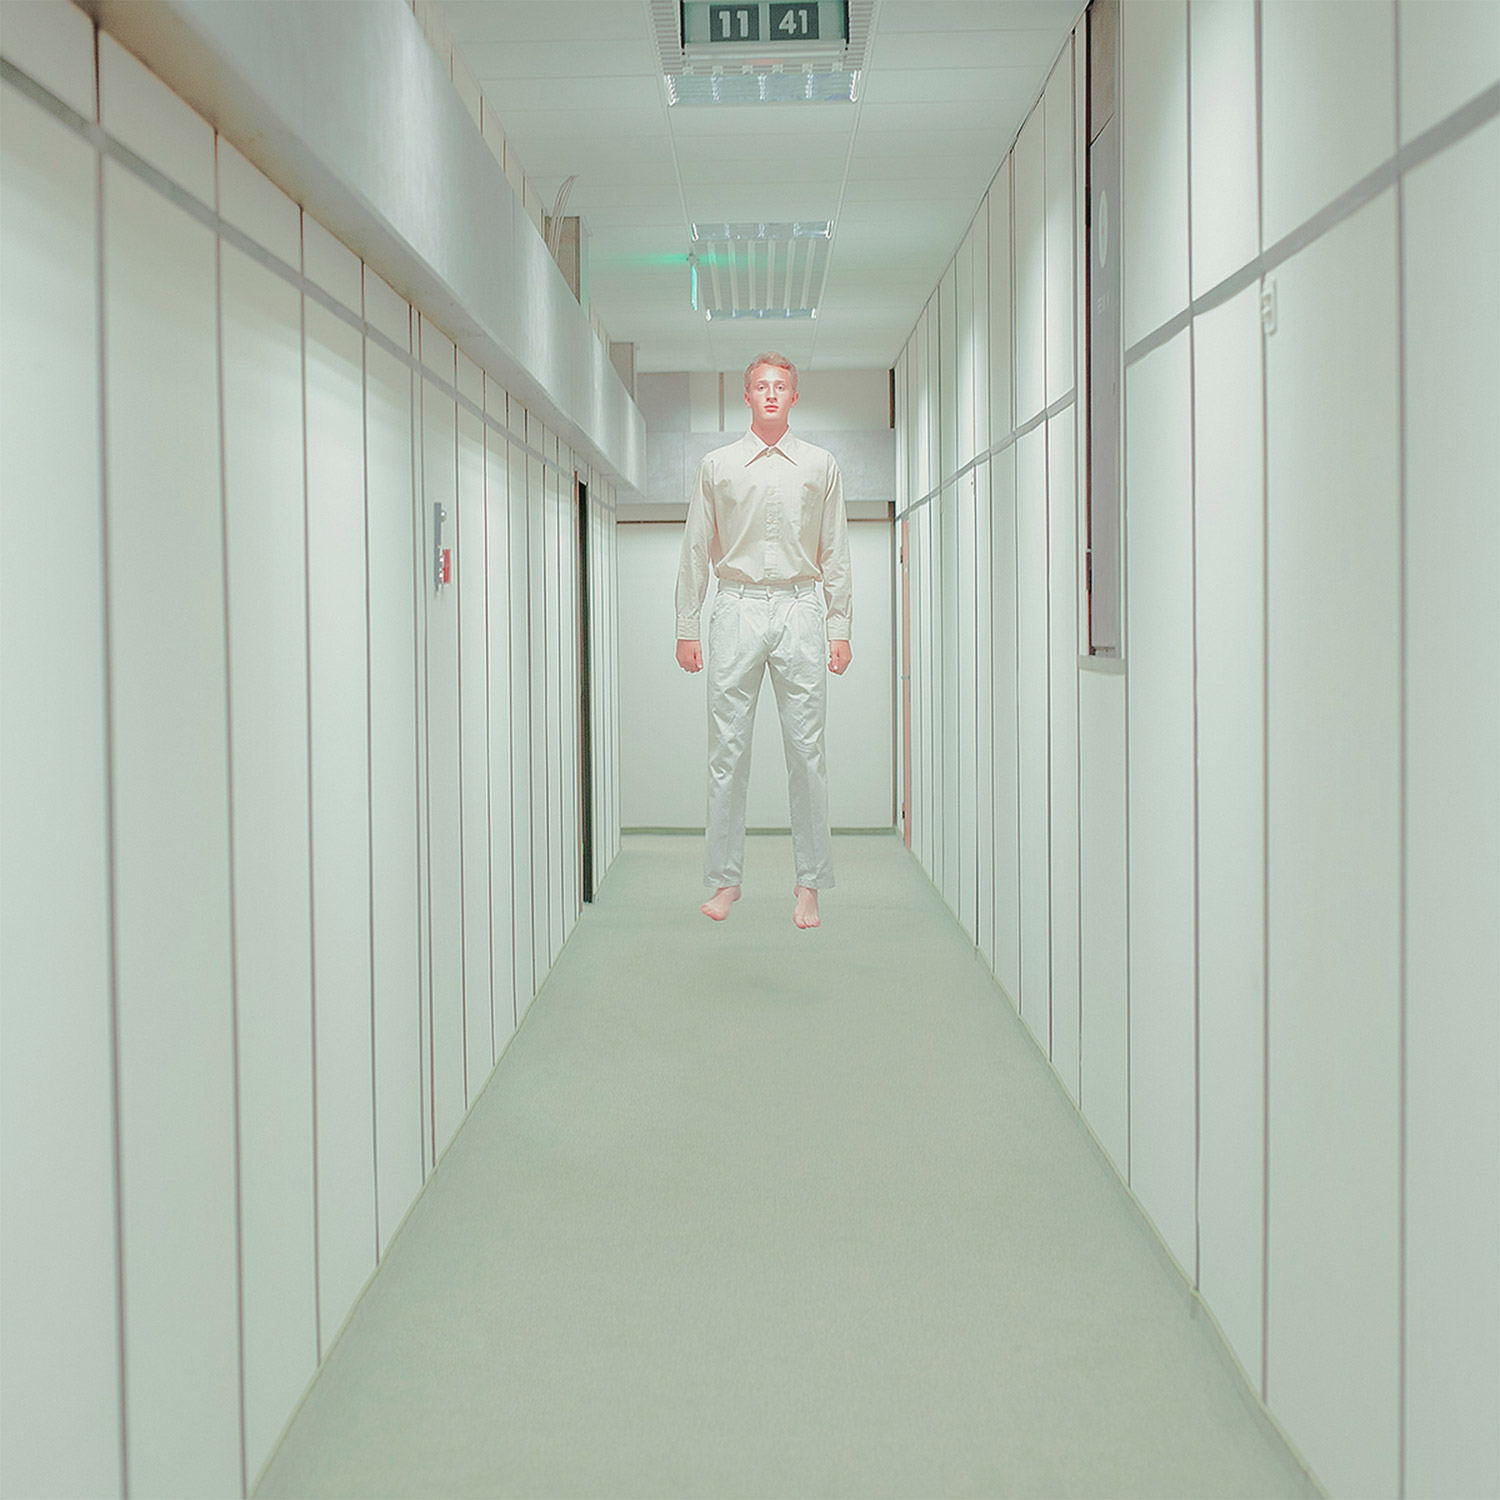 Maria Svarbova - Human Space, man floating in hallway